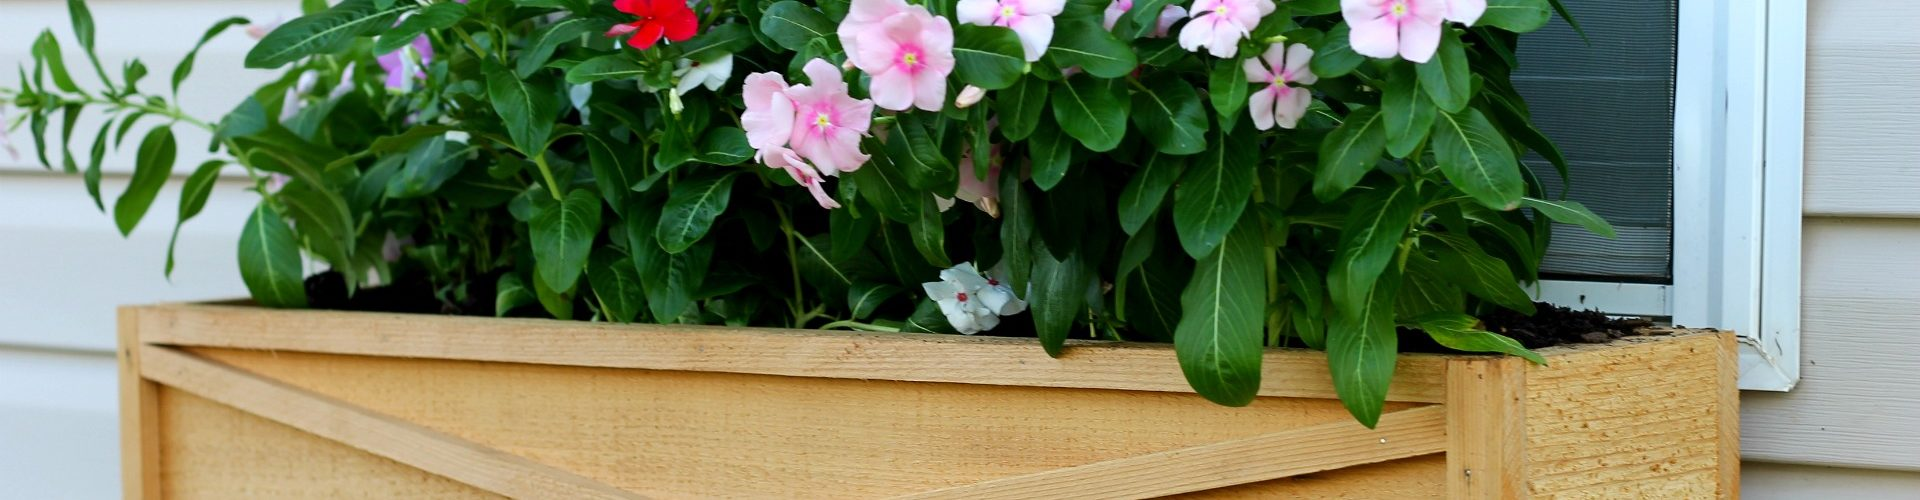 Cedar window box tutorial